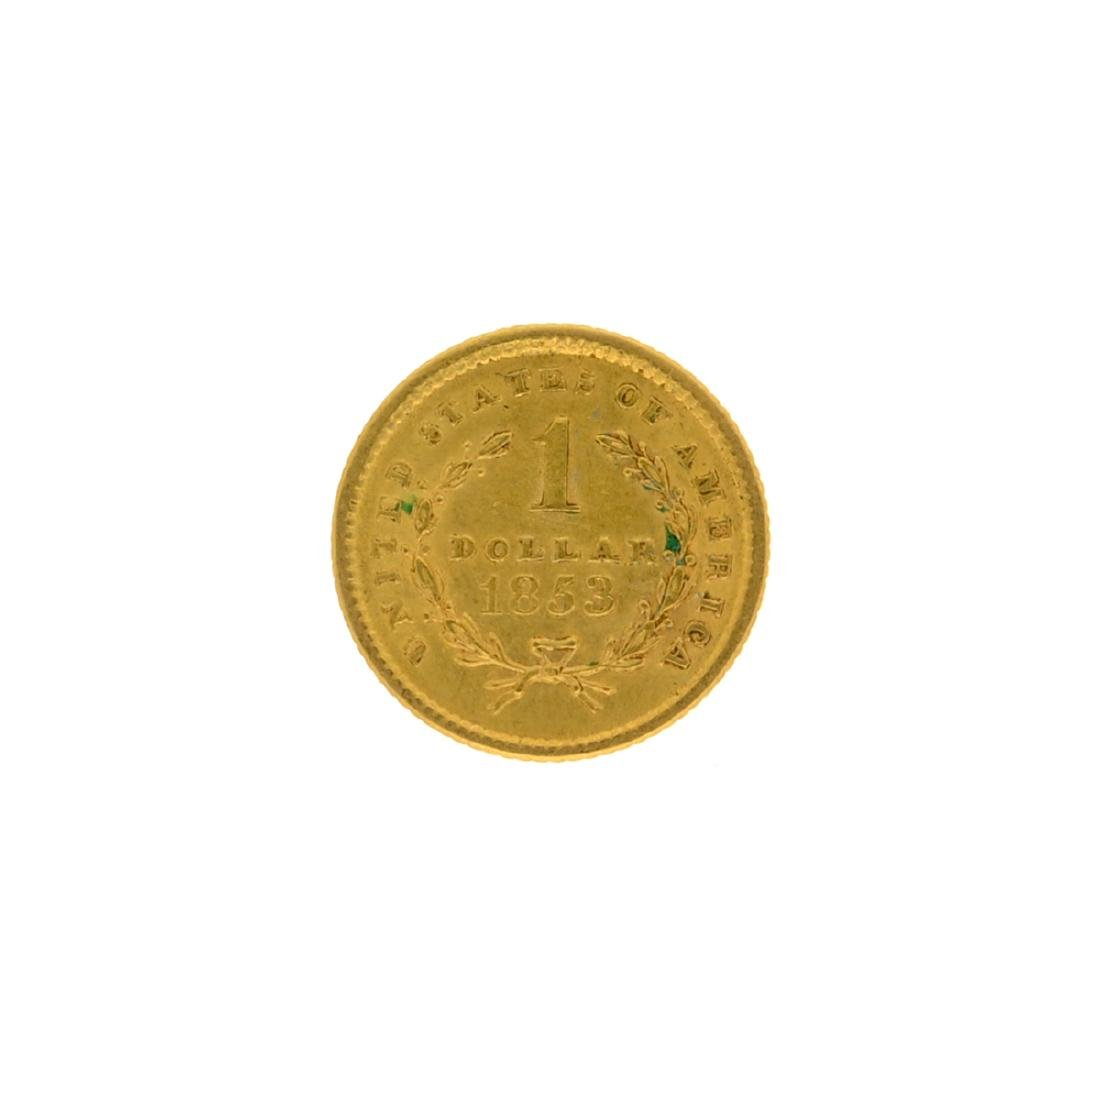 1853 $1 U.S. Liberty Head Gold Coin